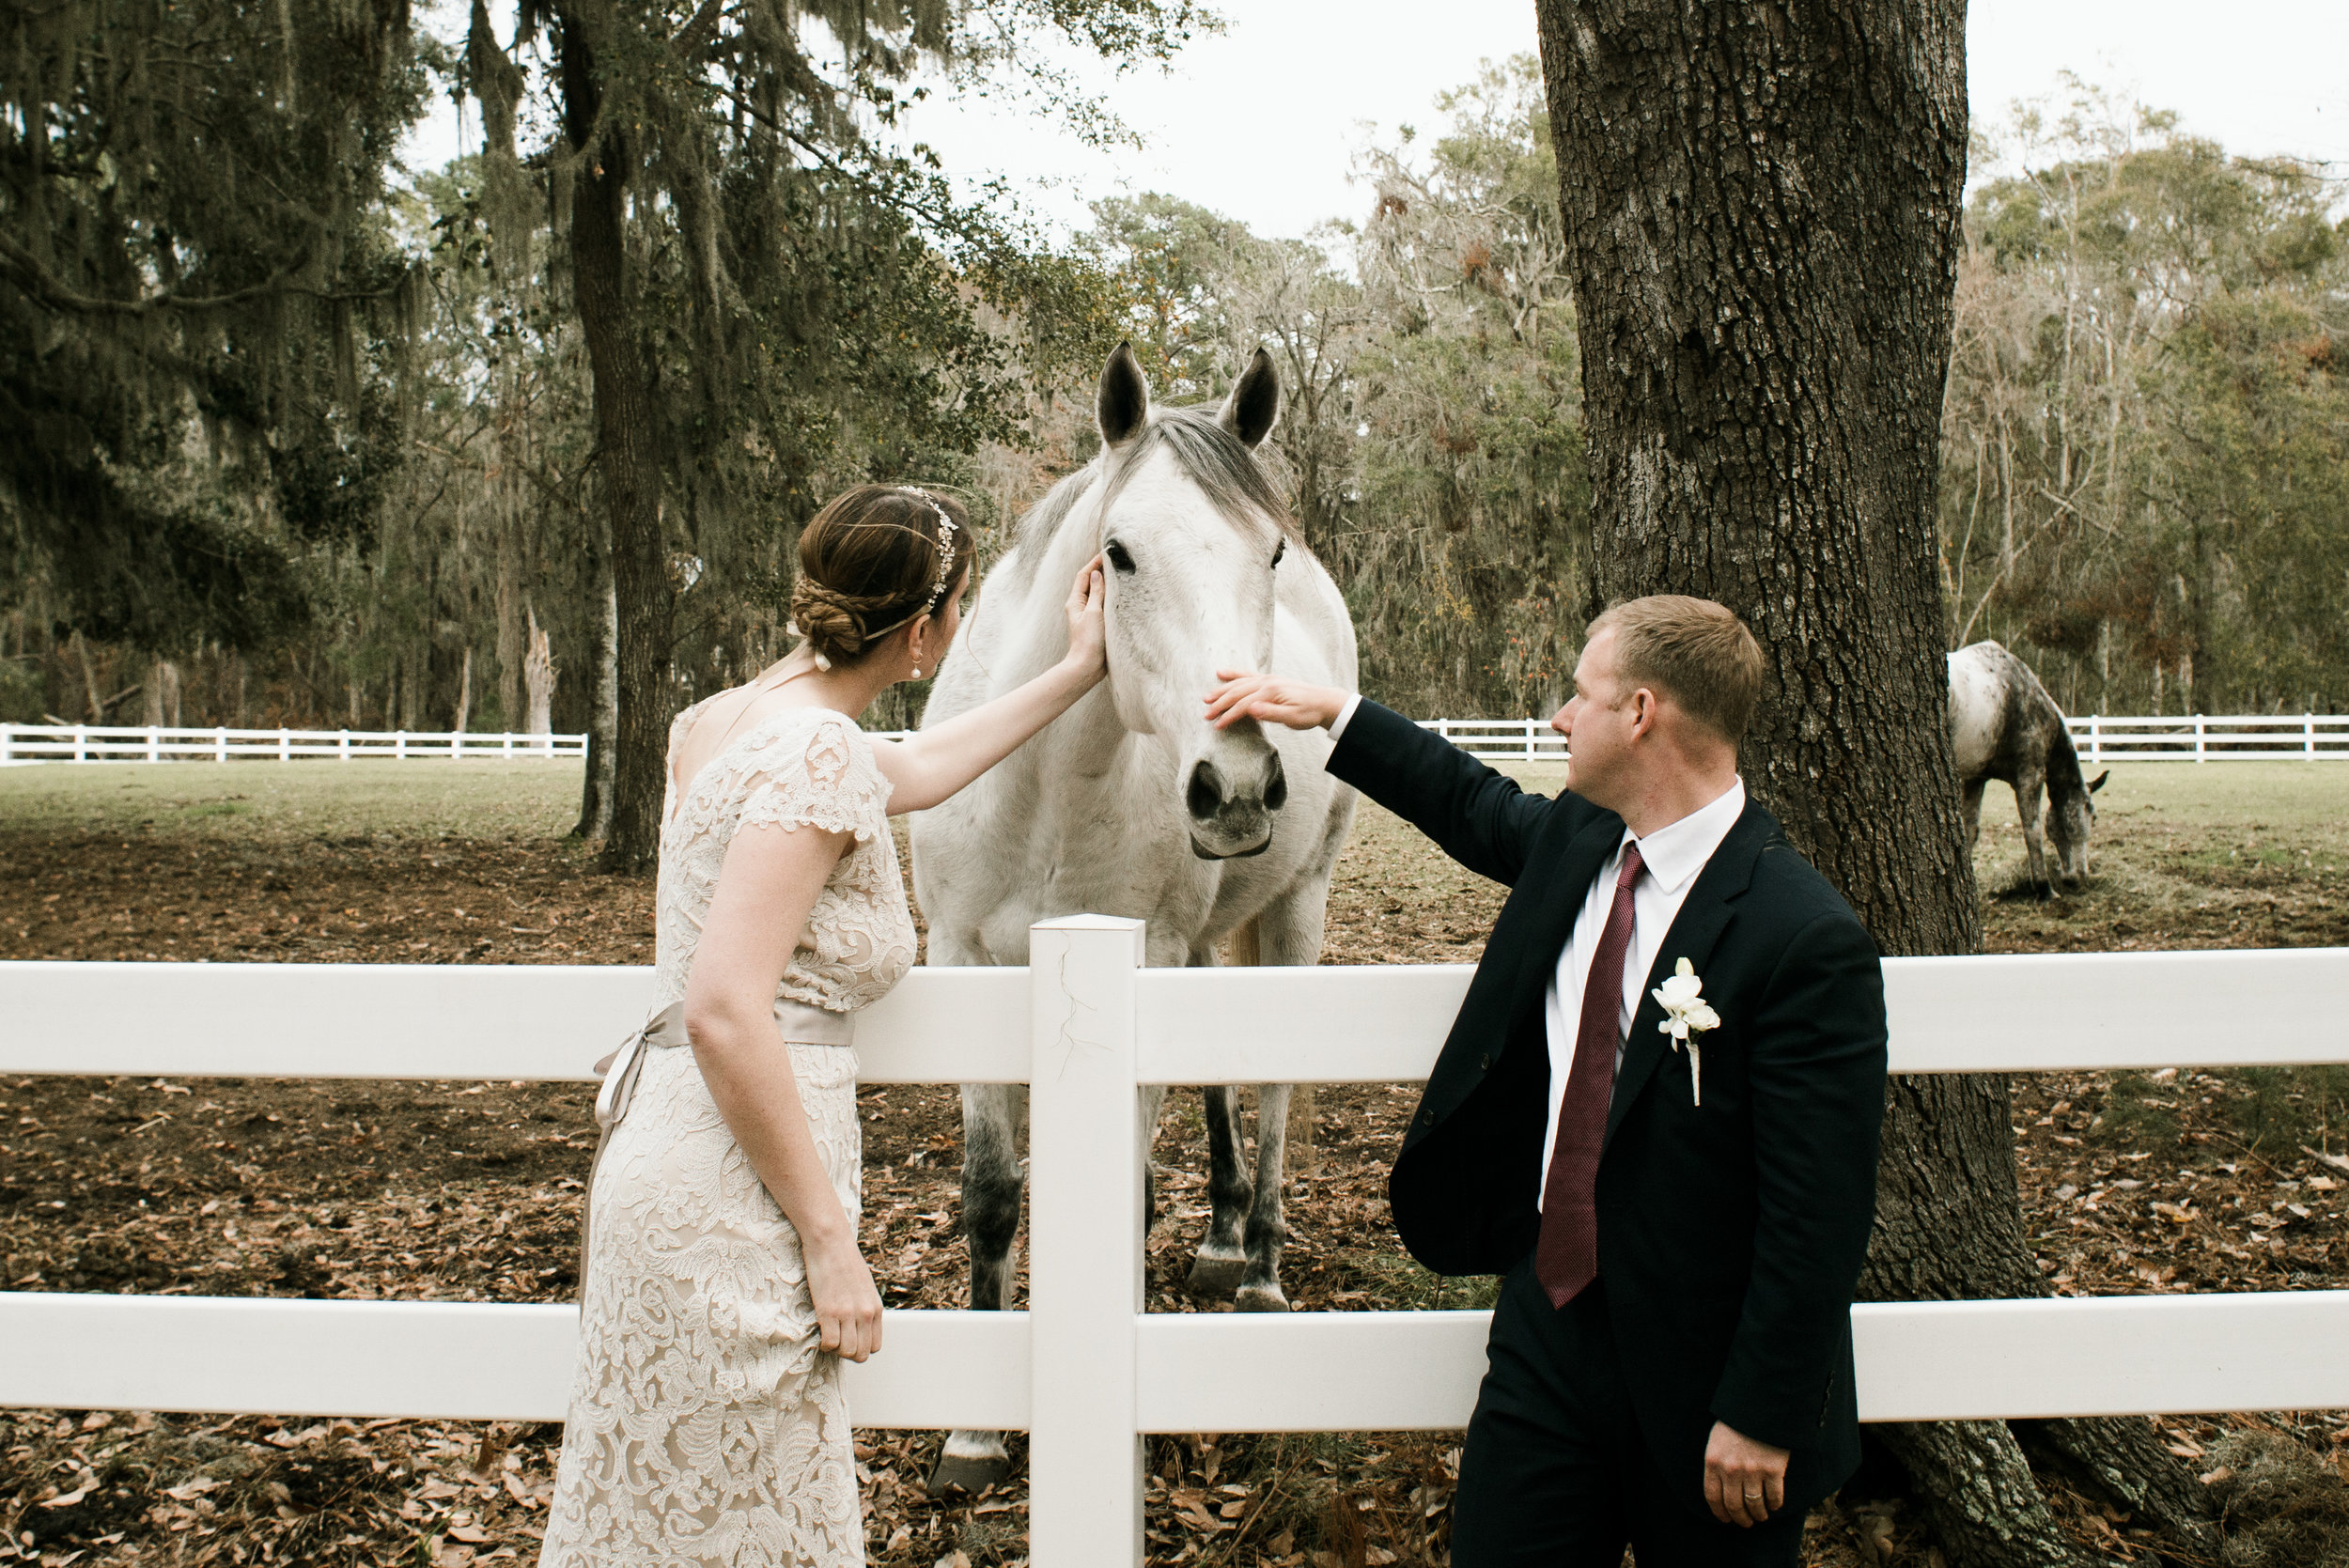 emily-and-david-daufuskie-island-wedding-december-wedding-meg-hill-photo- (177 of 728).jpg